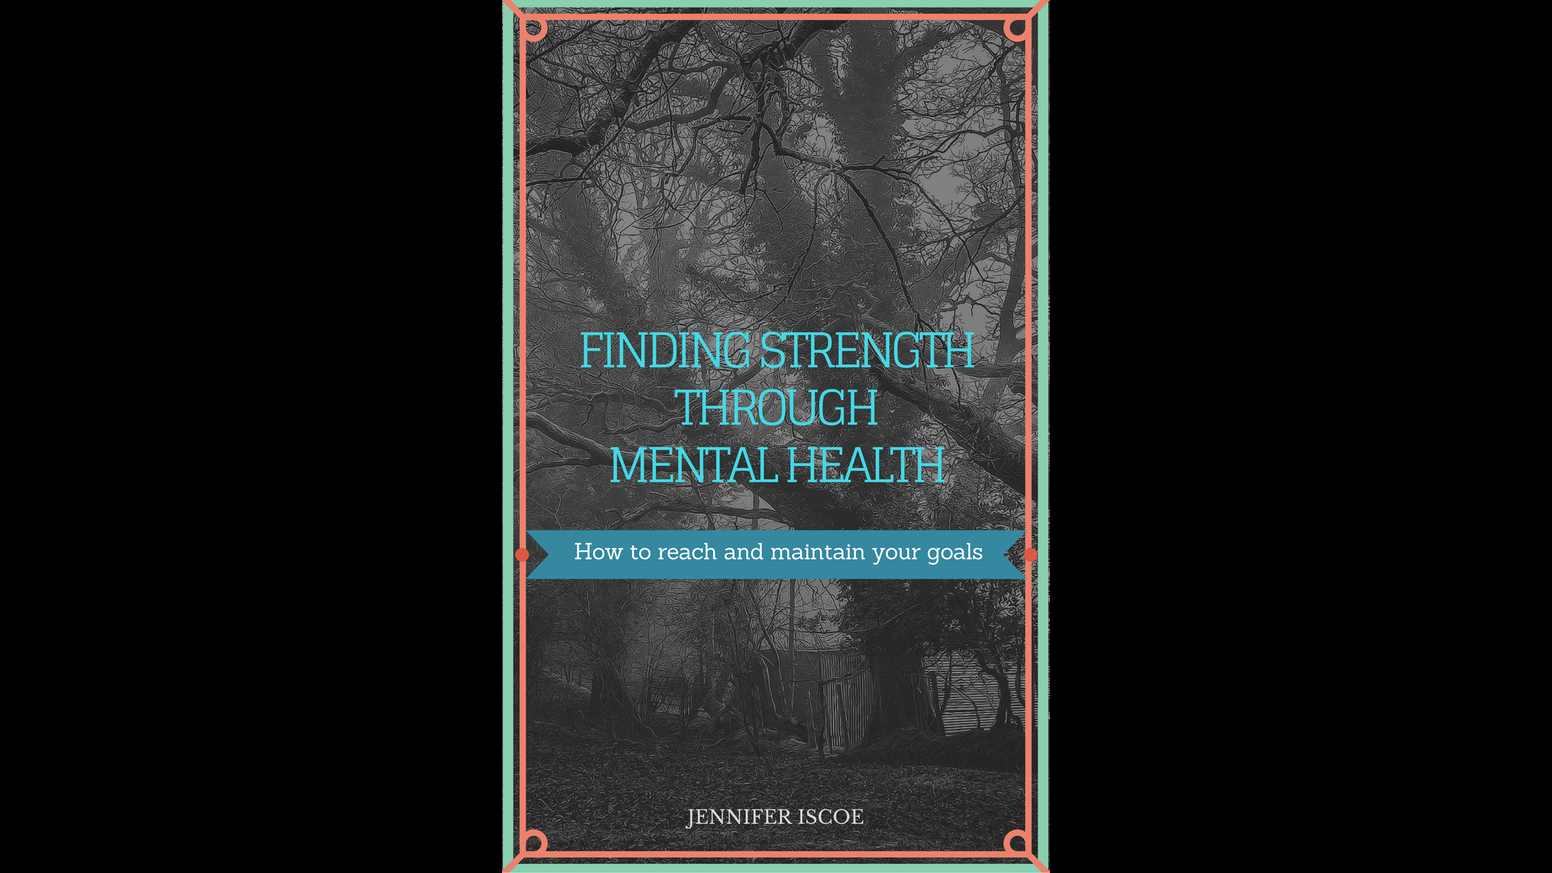 Finding Strength Through Mental Health by Jennifer Iscoe ...